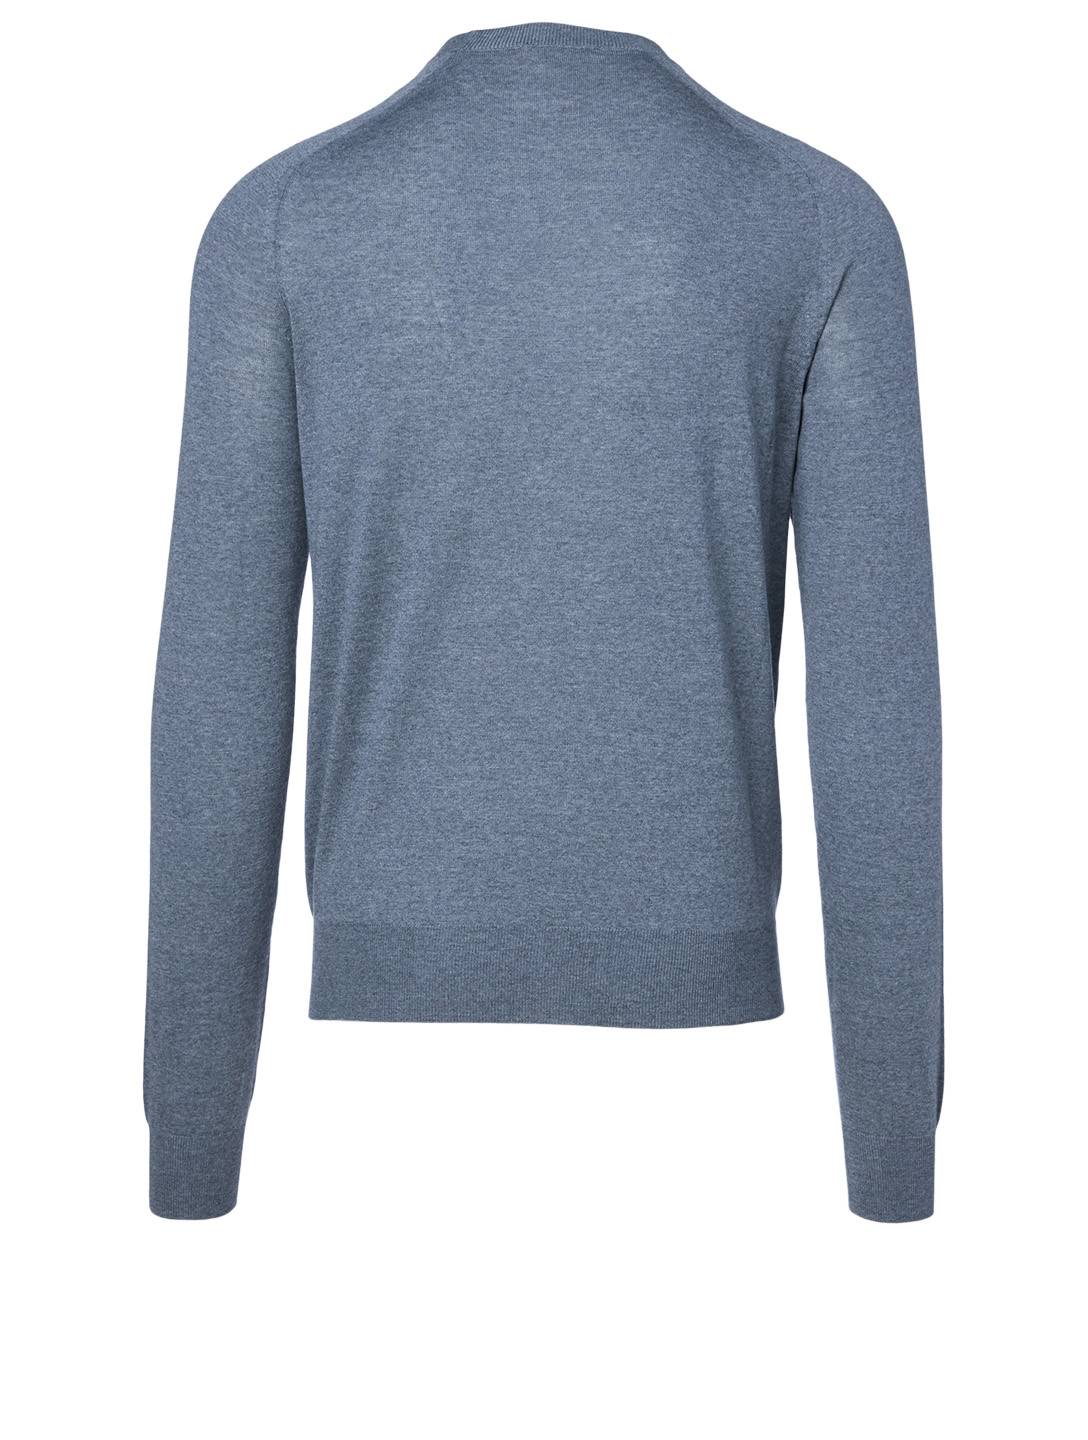 THE ROW Scott Wool Crewneck Sweater Men's Grey